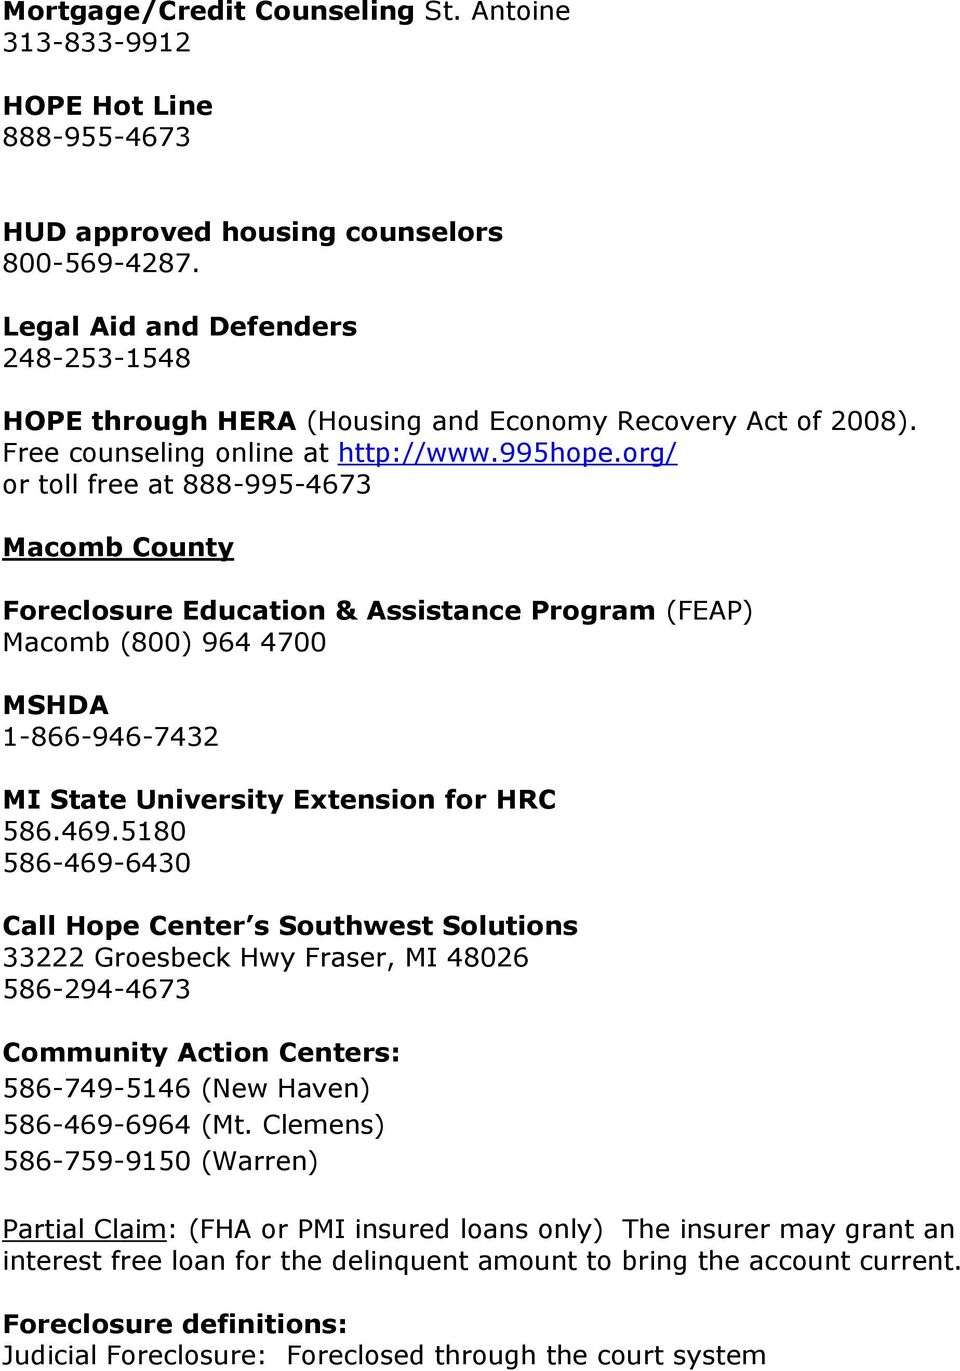 org/ or toll free at 888-995-4673 Macomb County Foreclosure Education & Assistance Program (FEAP) Macomb (800) 964 4700 MSHDA 1-866-946-7432 MI State University Extension for HRC 586.469.